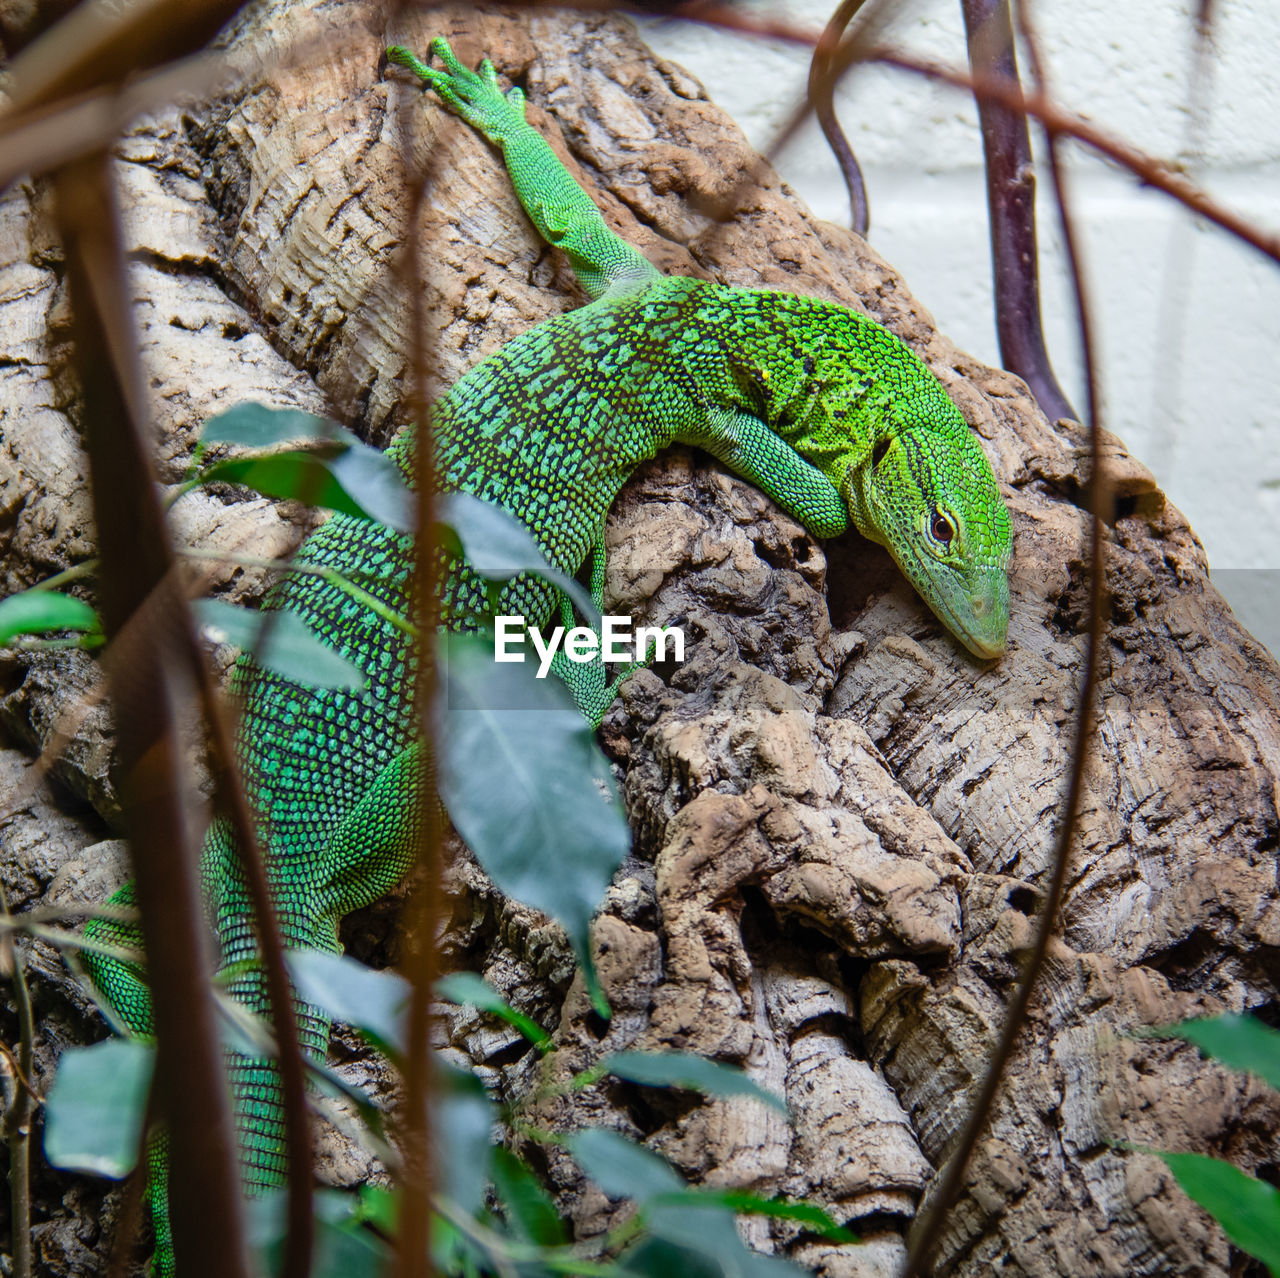 animal wildlife, reptile, green color, animals in the wild, one animal, animal themes, animal, no people, nature, plant, vertebrate, lizard, tree, close-up, selective focus, day, branch, outdoors, plant part, wood - material, animal scale, iguana